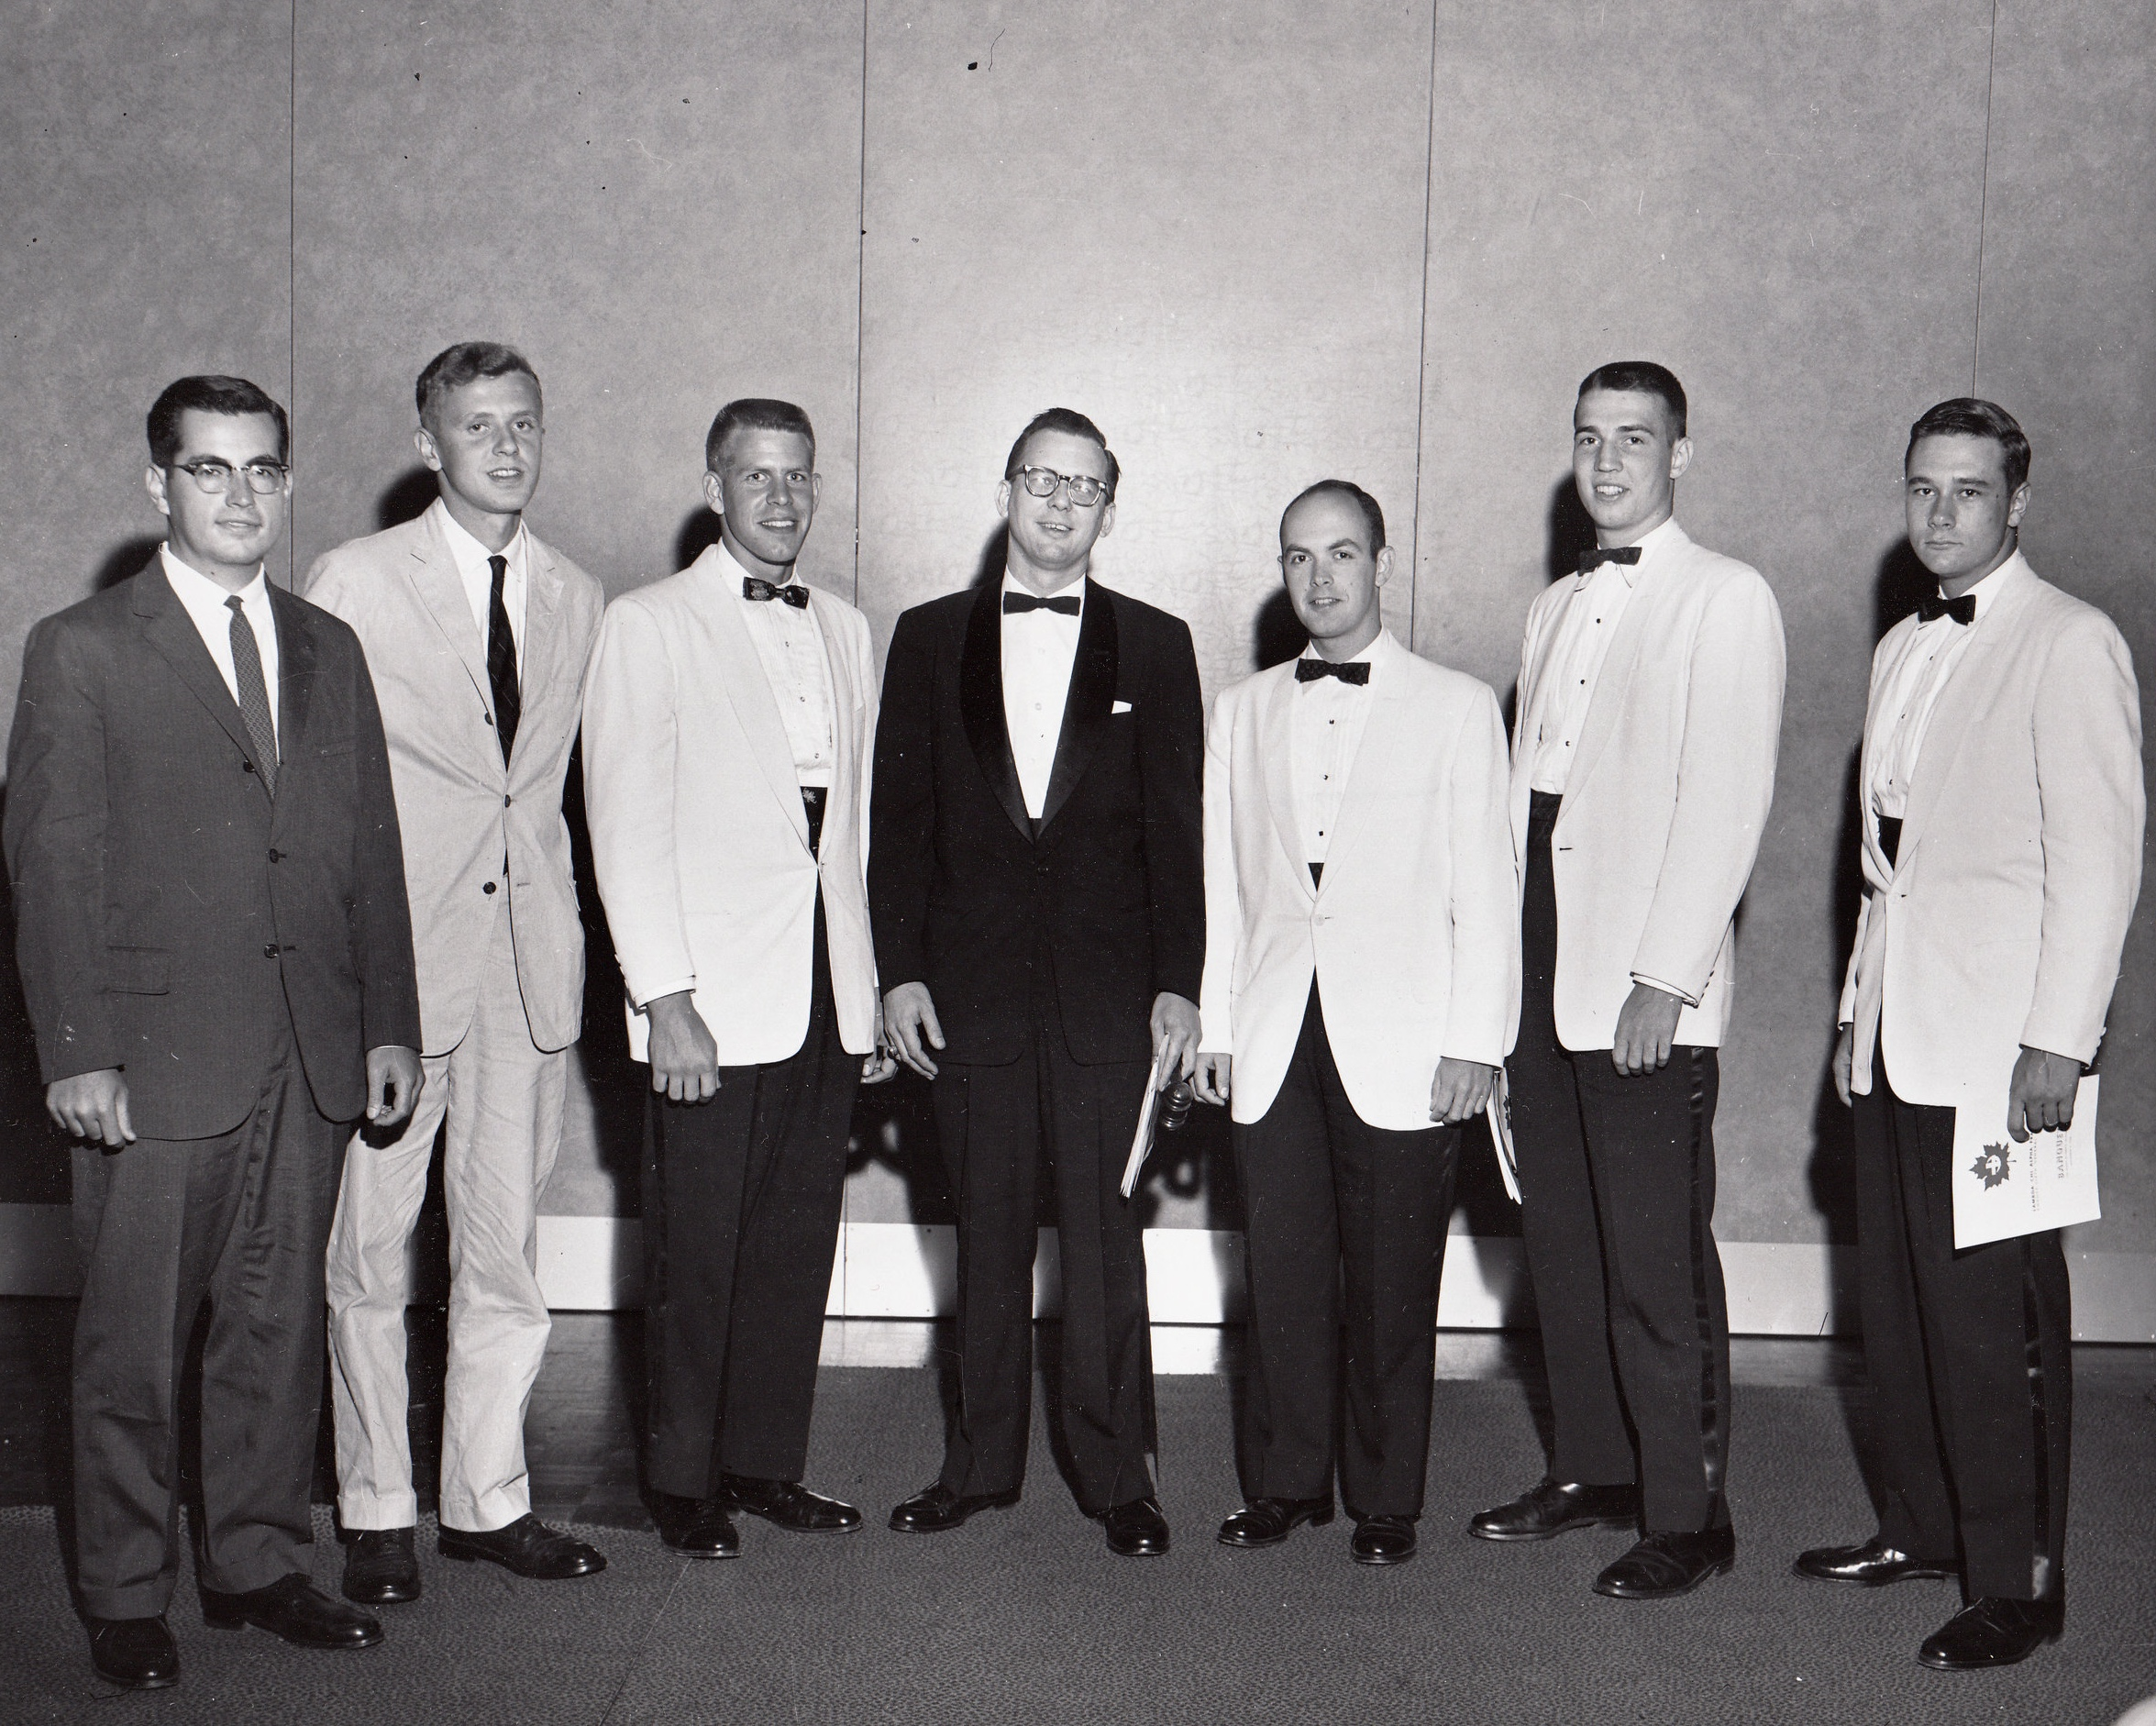 With Sigma's delegates at the 26th General Assembly in Montréal, 1958